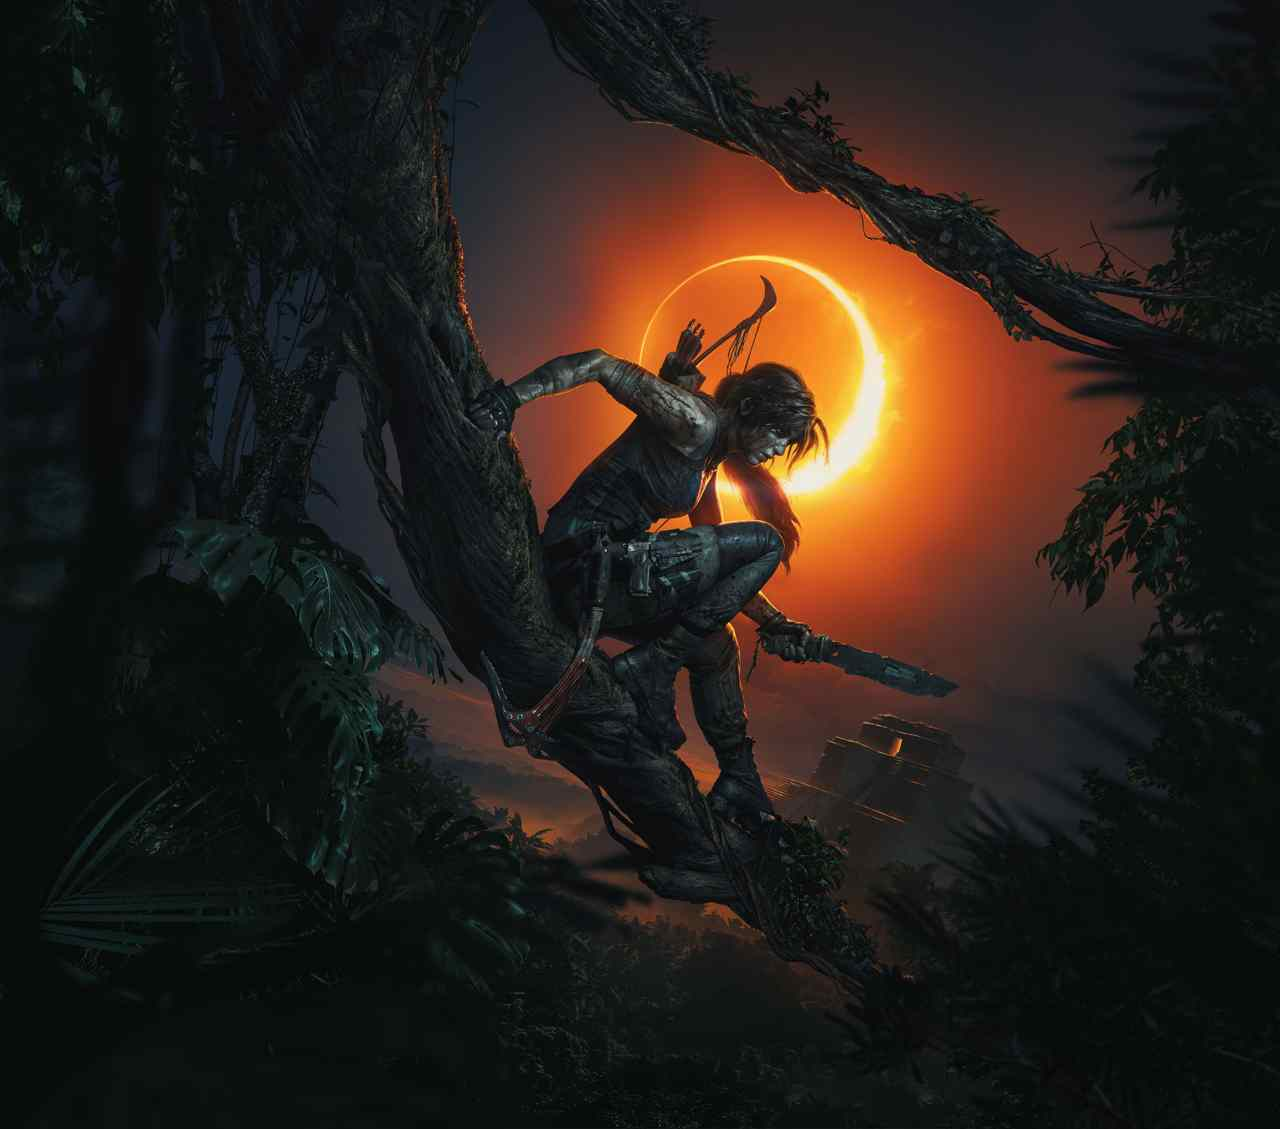 Shadow of Tomb Raider | PS4, Xbox One and PC | Sale Price: Rs 2,999 | The latest addition to the Tomb Raider franchise is available at a 25 percent discount from the listed price of Rs 3,999. The action-adventure video game follows the story of Lara Croft as she travels through dystopian Mesoamerica to prevent Mayan apocalypse battling a paramilitary organisation known as the Trinity. (Image: Tomb Raider)